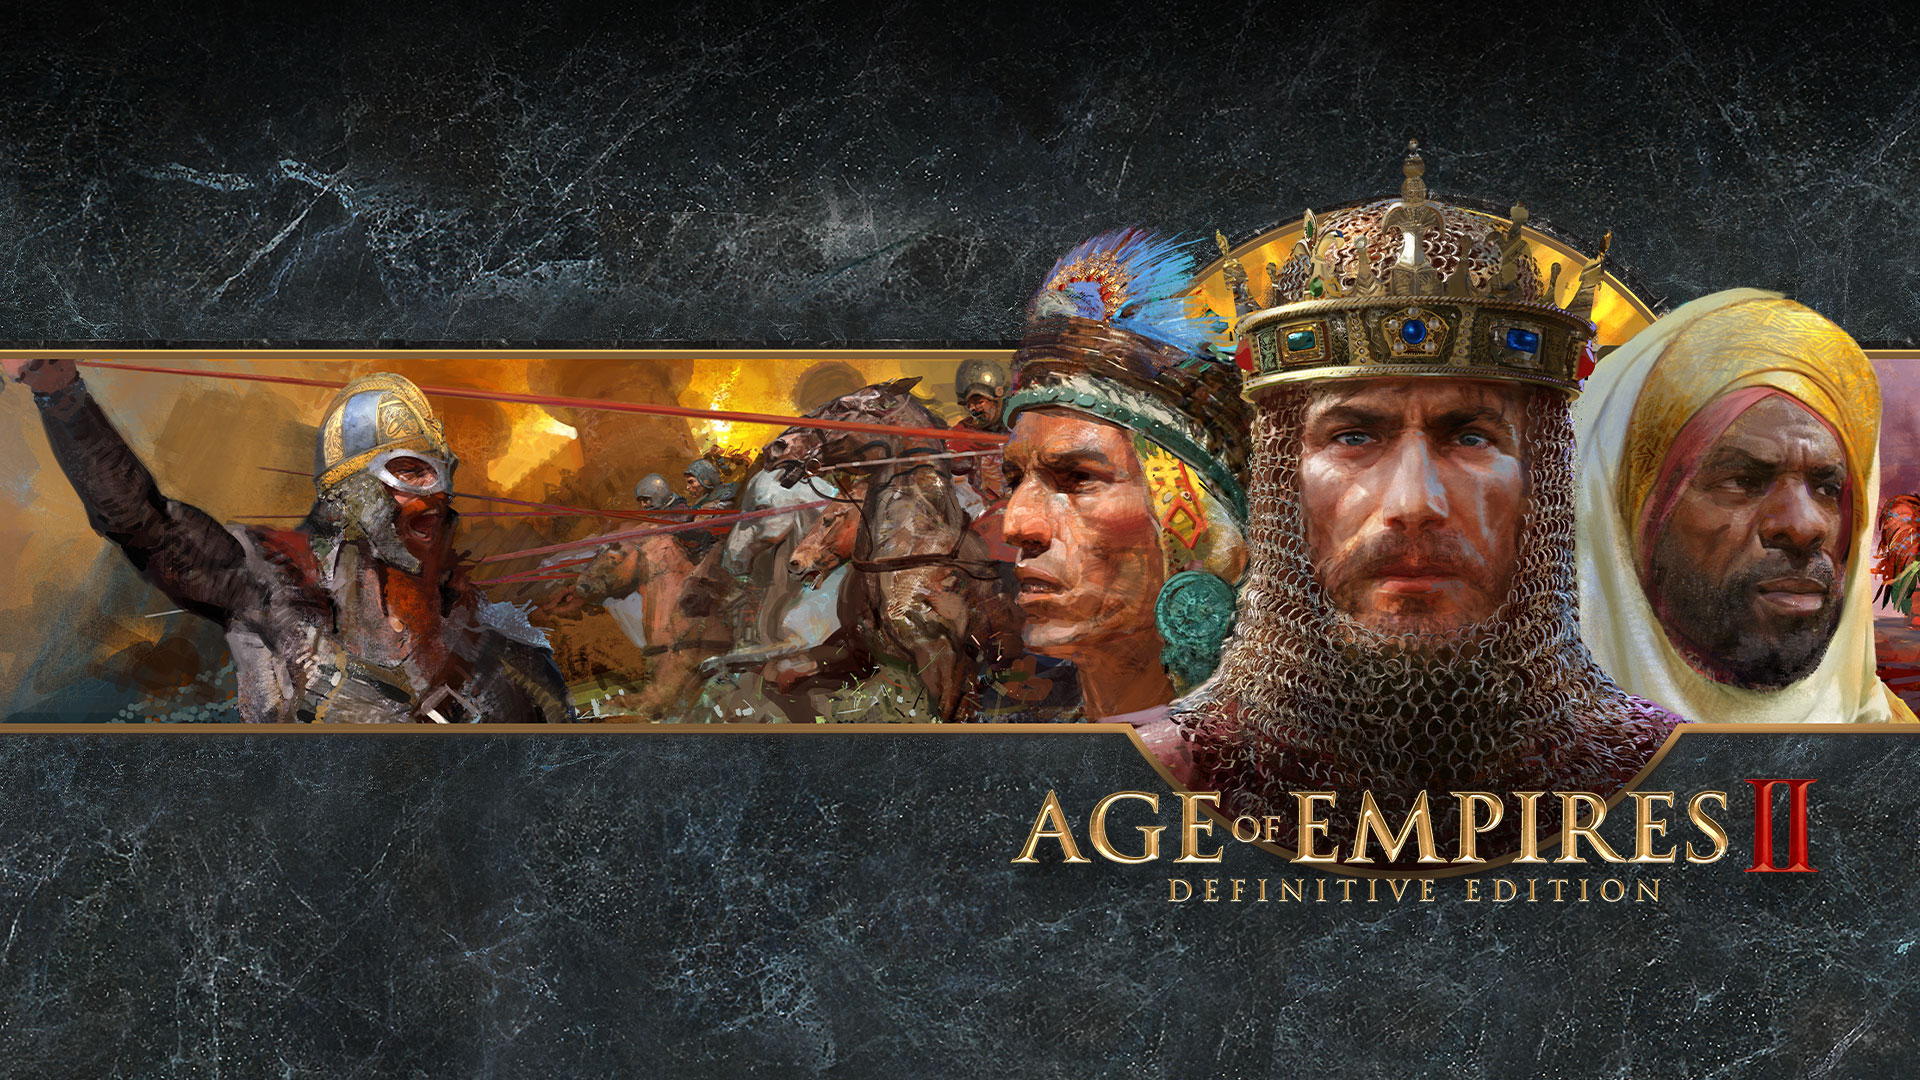 Age of Empires II Definitive Edition 標誌與交戰派系的藝術展現